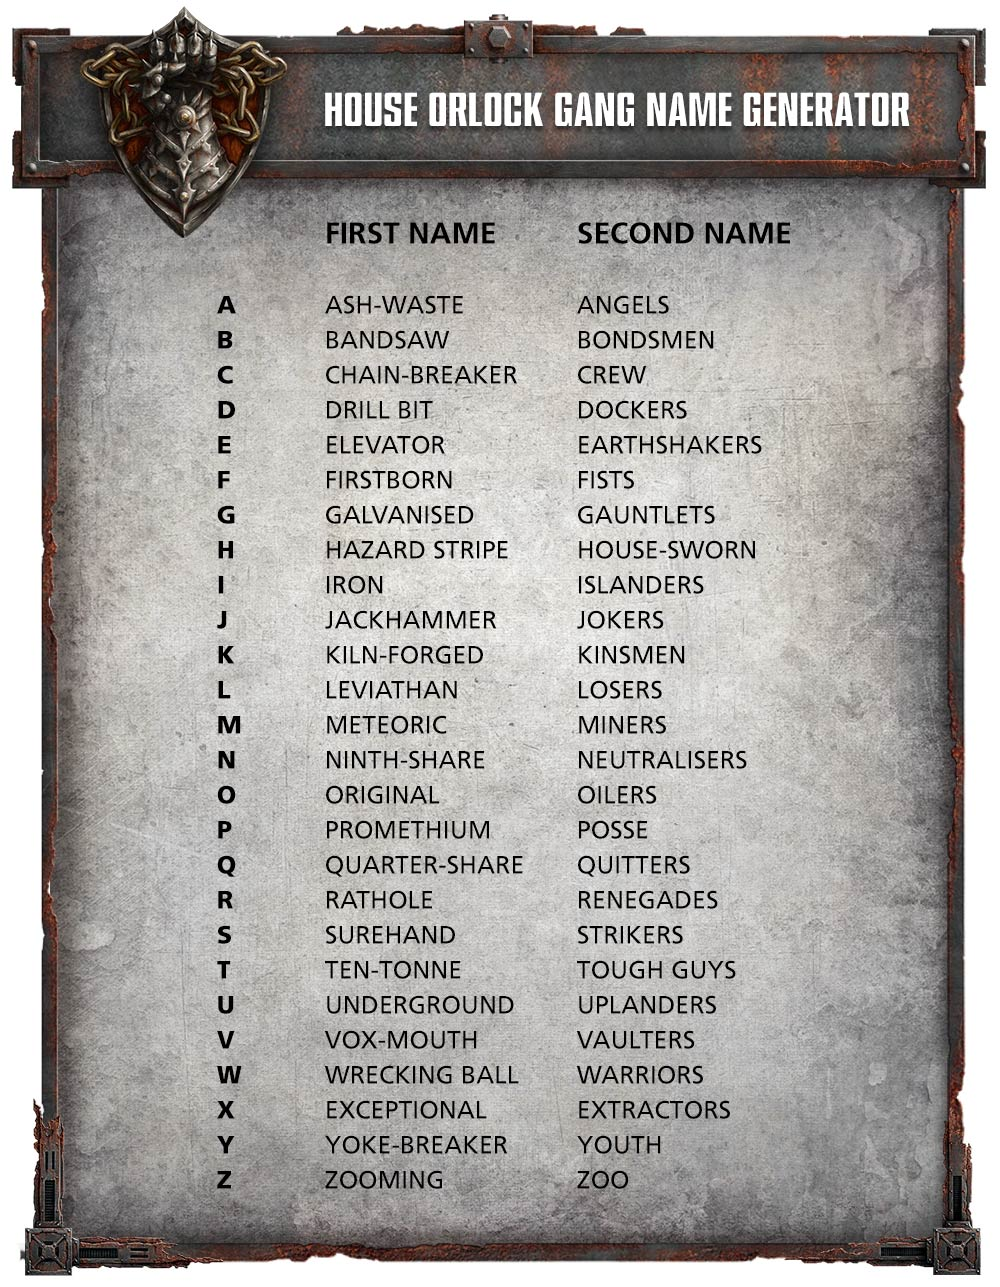 The Orlock Gang Name Generator - Warhammer Community